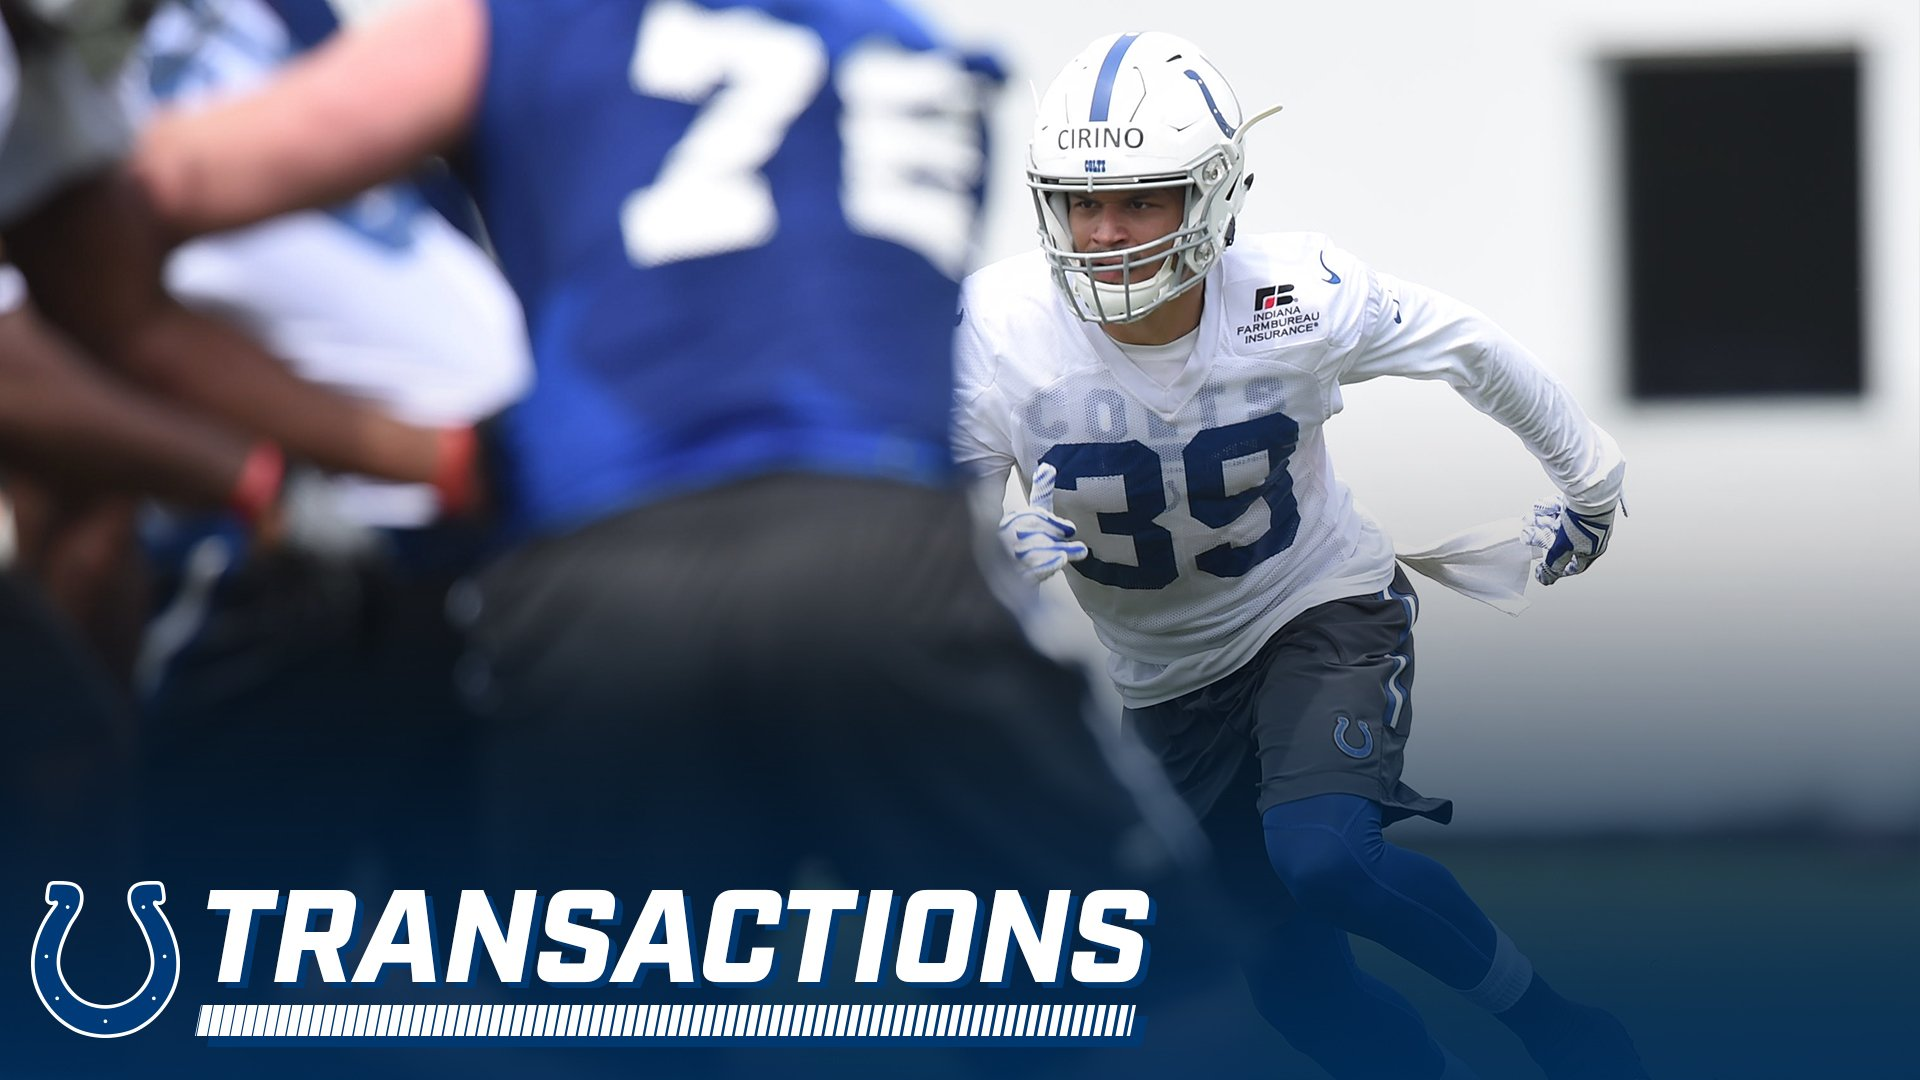 We have signed rookie minicamp tryout S Michael Cirino and released CB Kenneth Acker: https://t.co/6psiyN4ErU https://t.co/bZfS6GNmhd